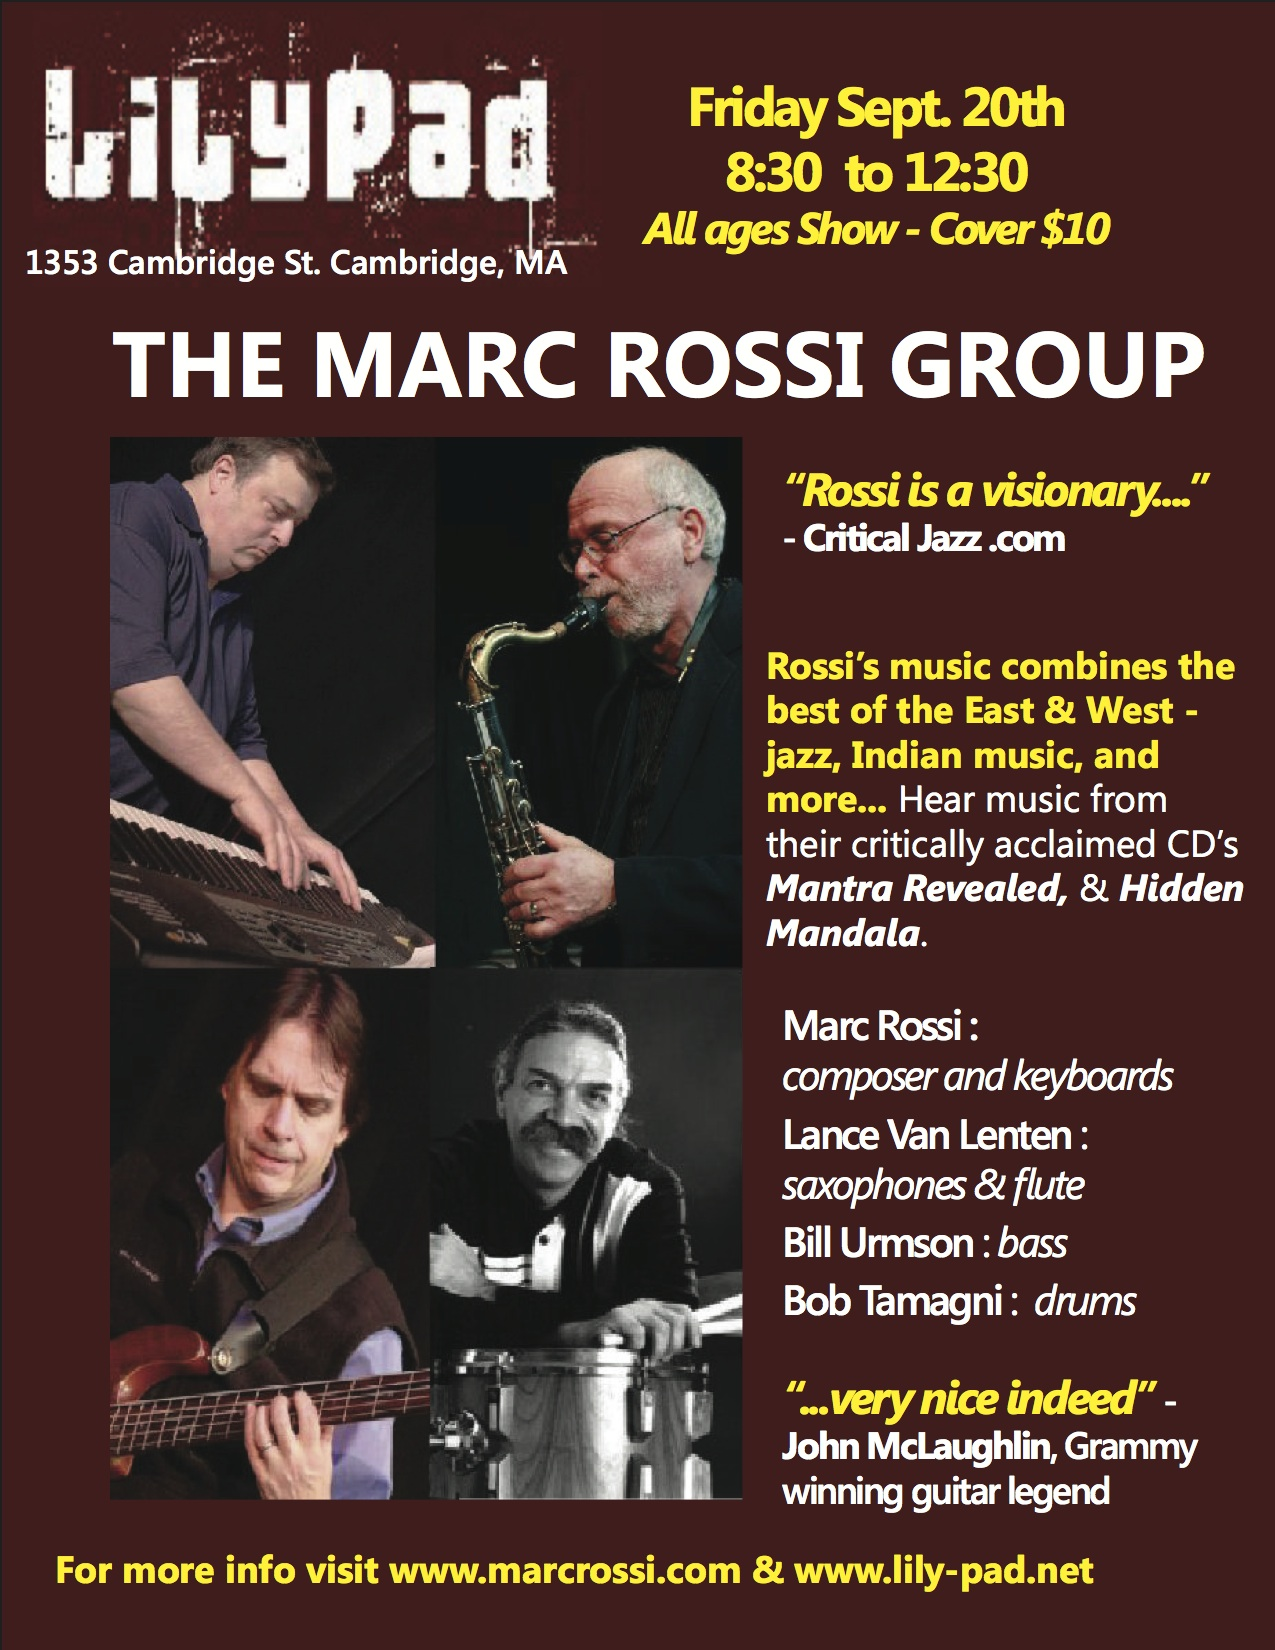 The marc rossi group live at the lilypad